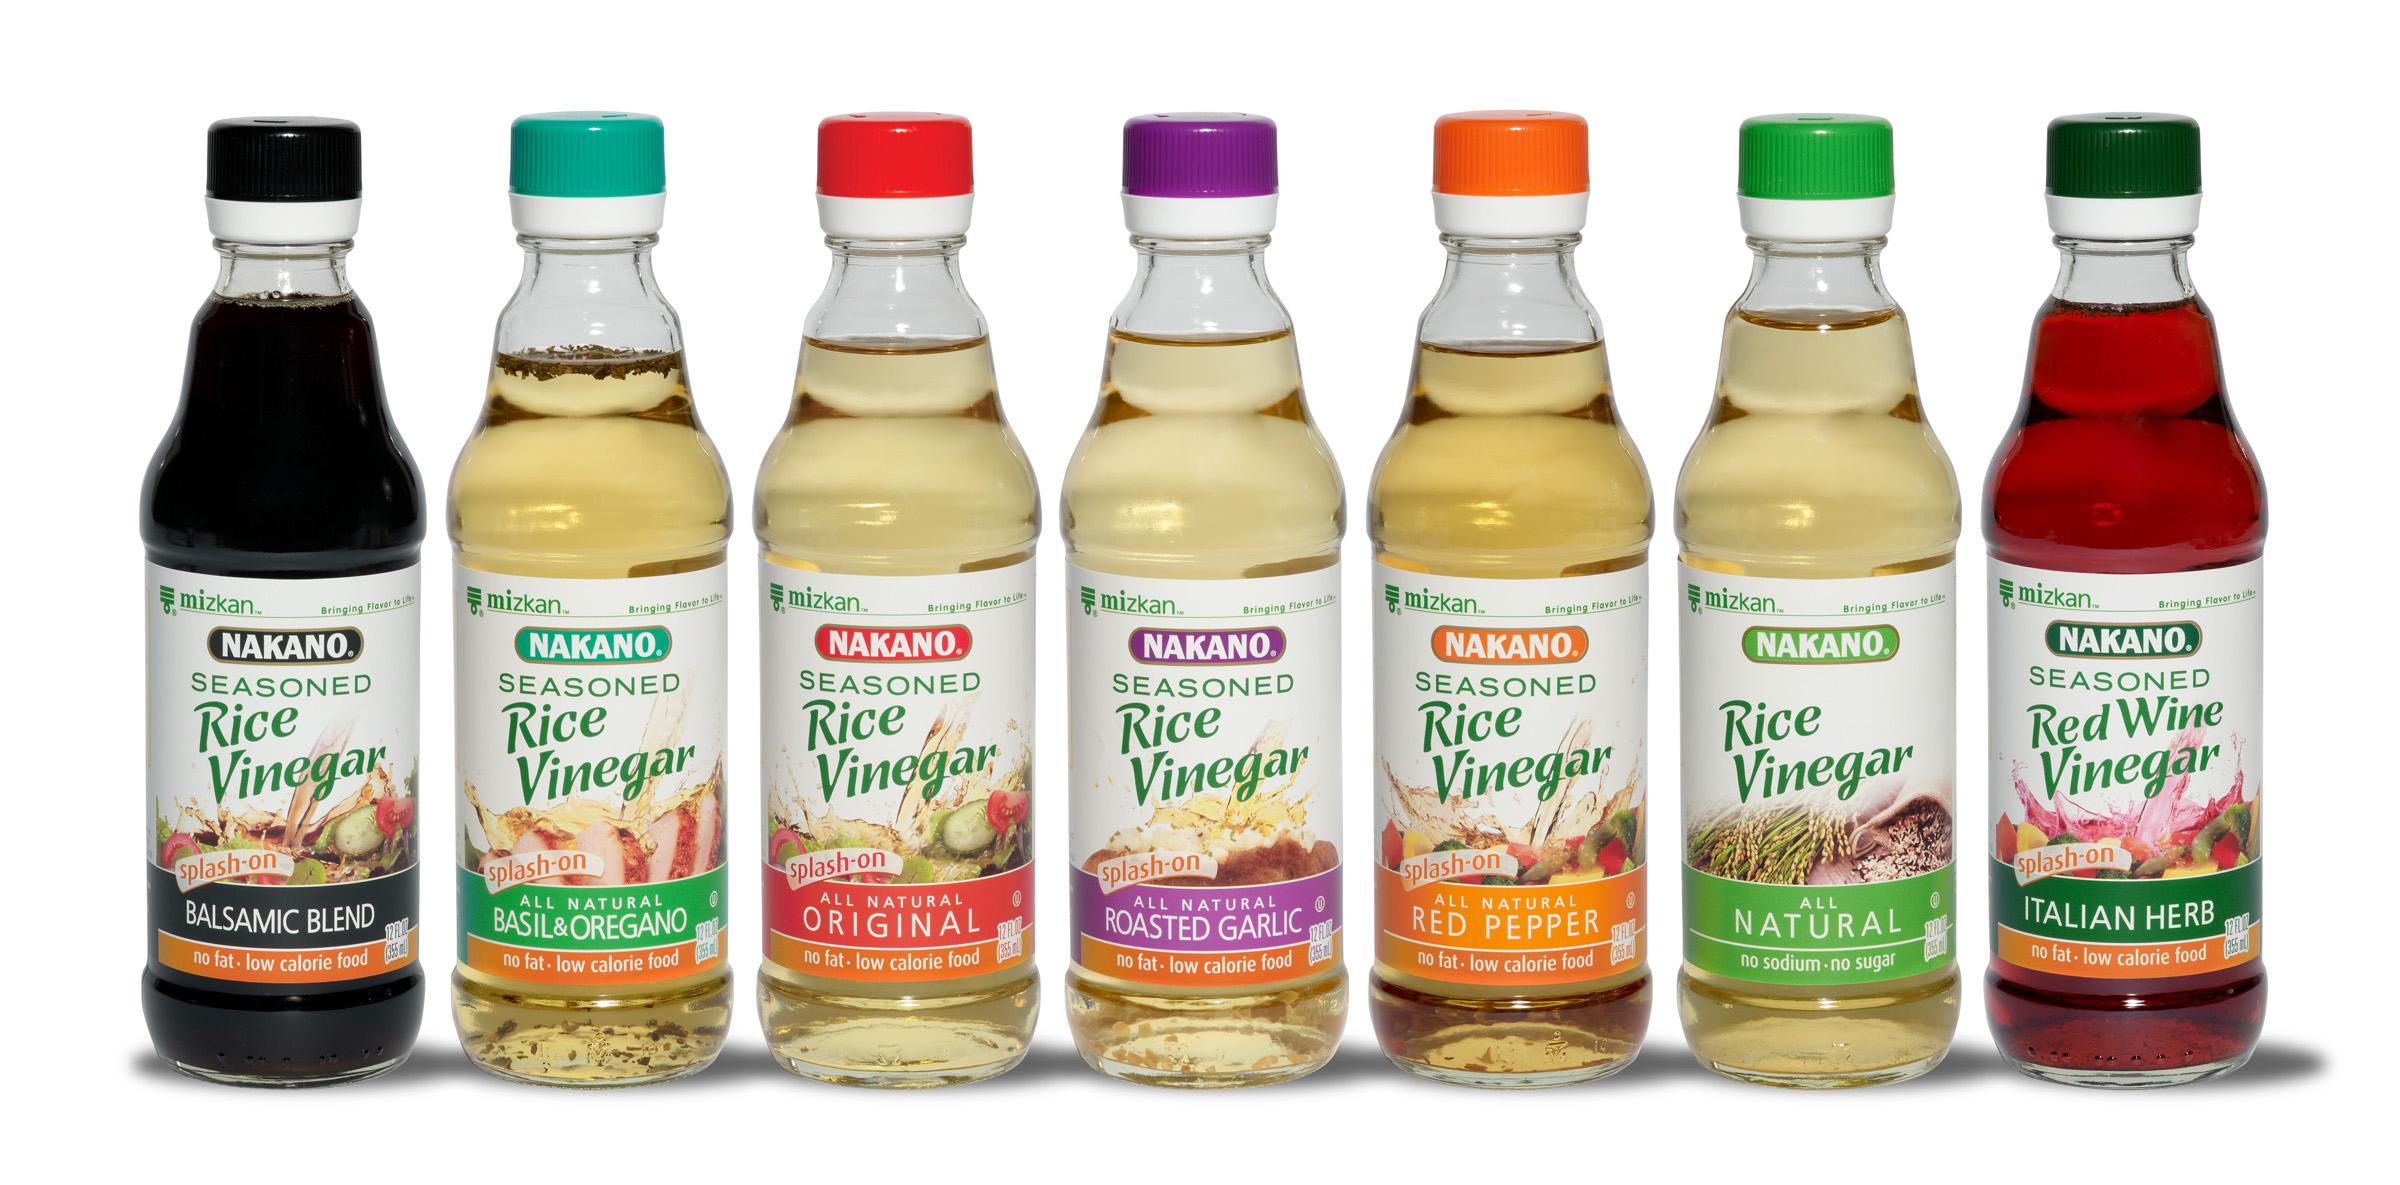 Adding Flavor with Rice Vinegar